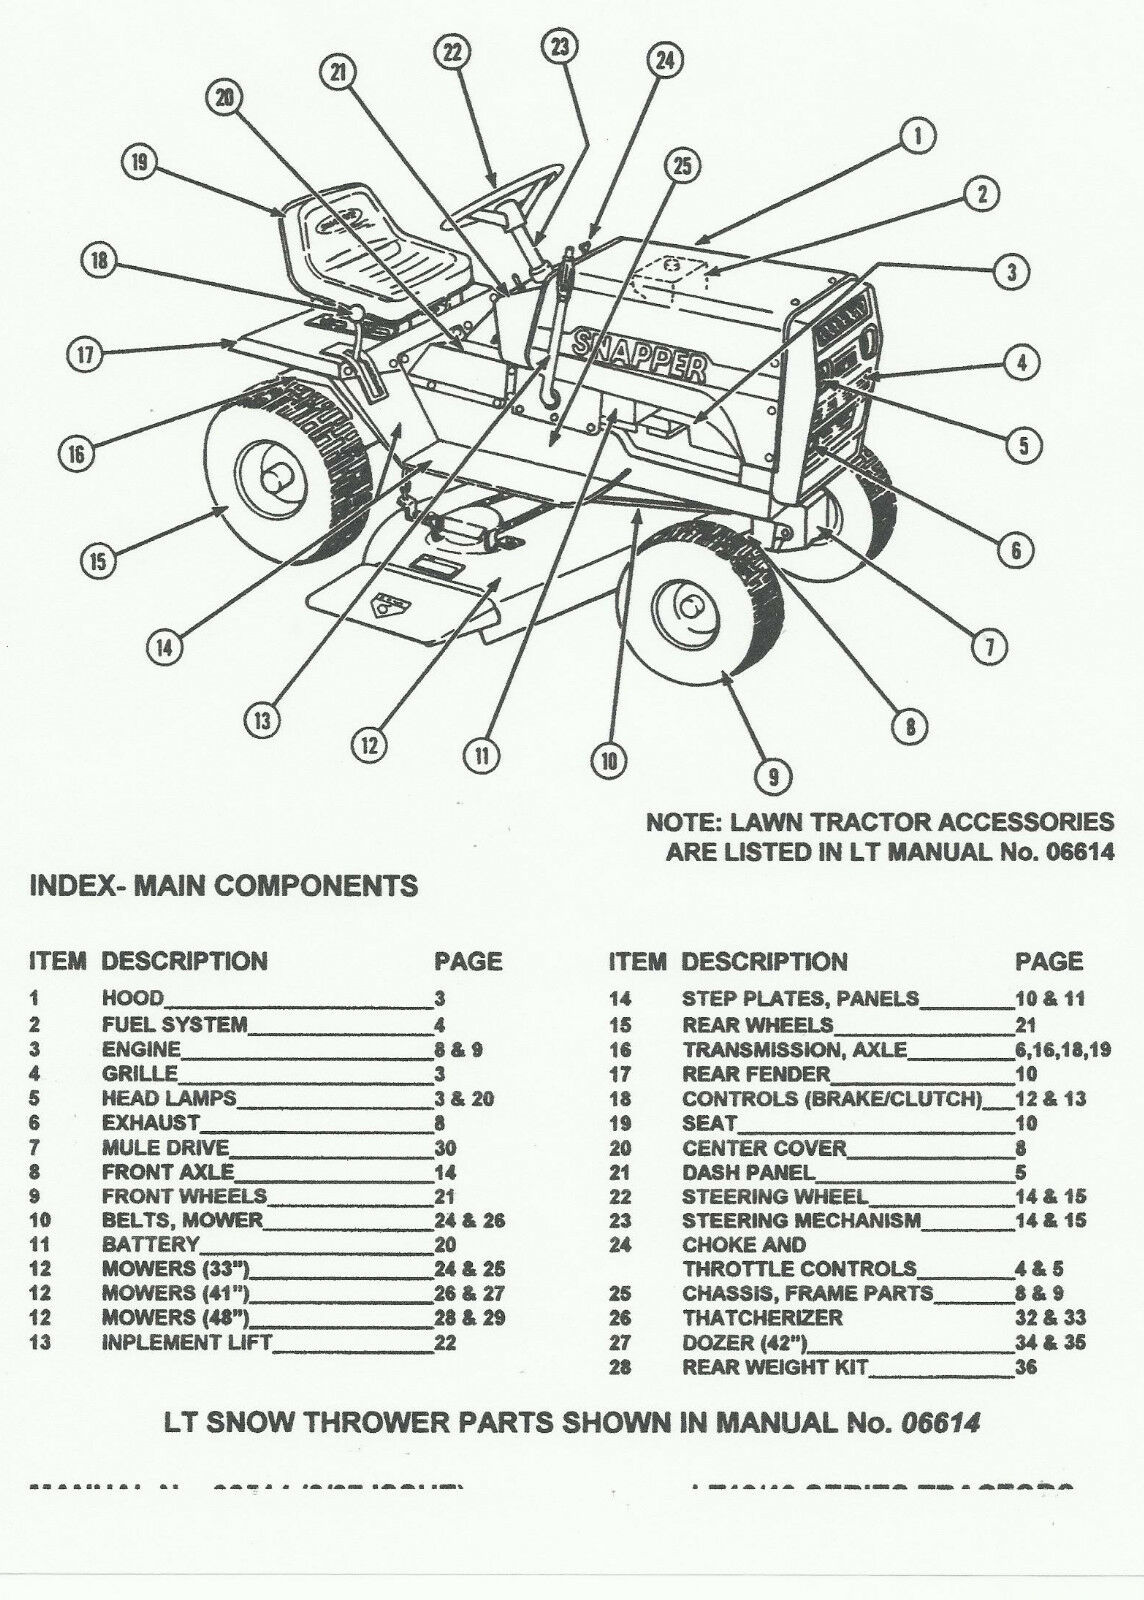 1987 porsche 944 engine diagram html